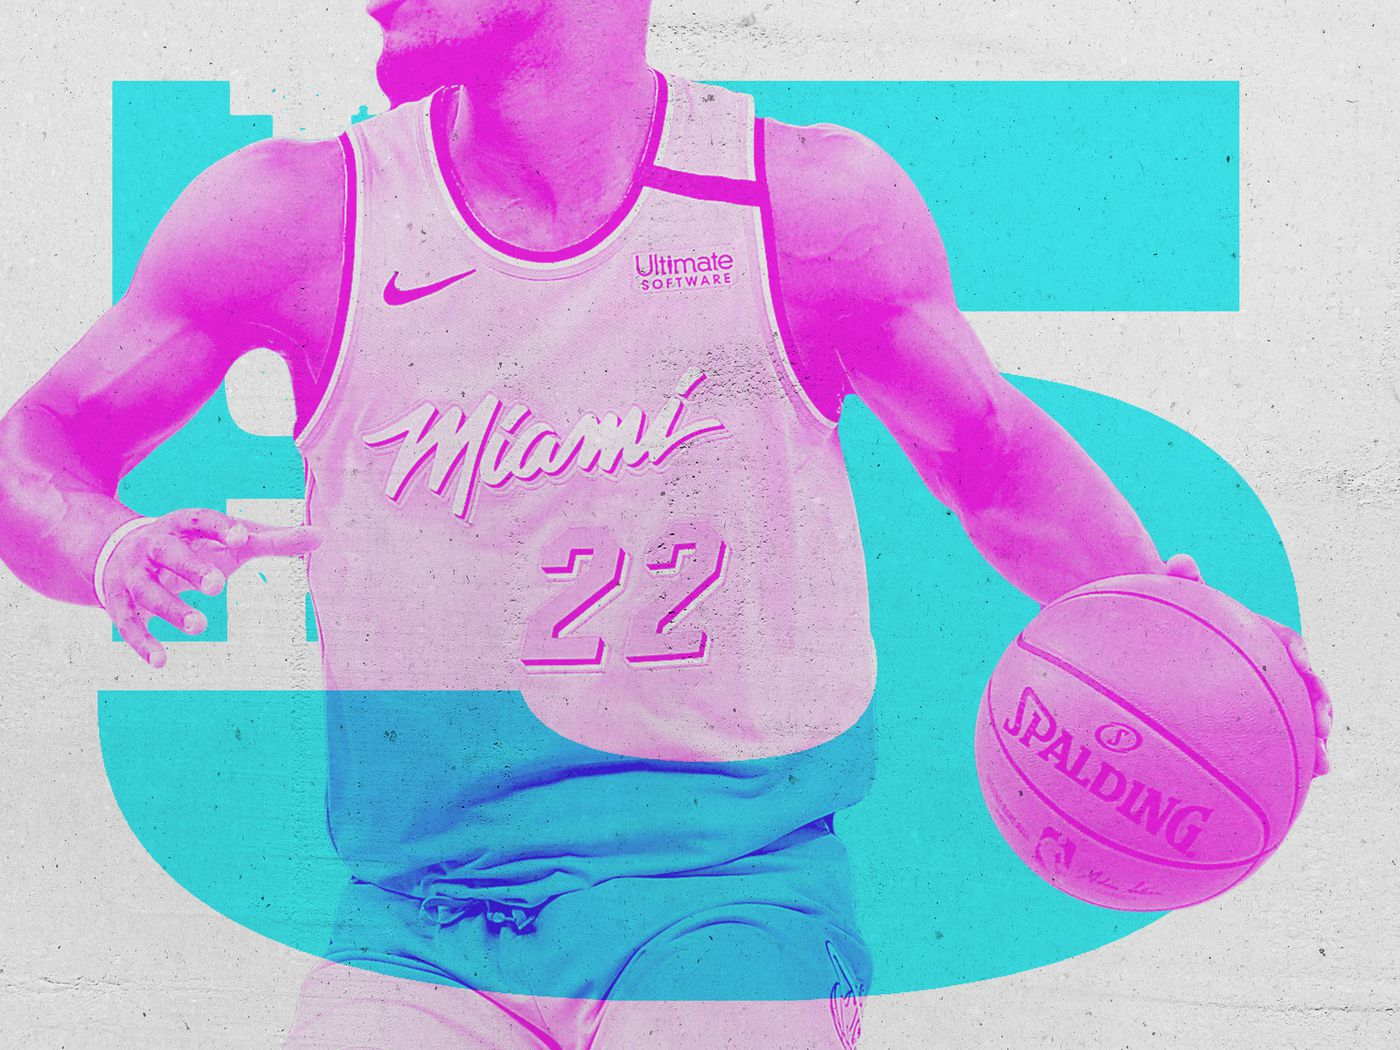 The Top 5 Jersey Designs In The Nba The Ringer